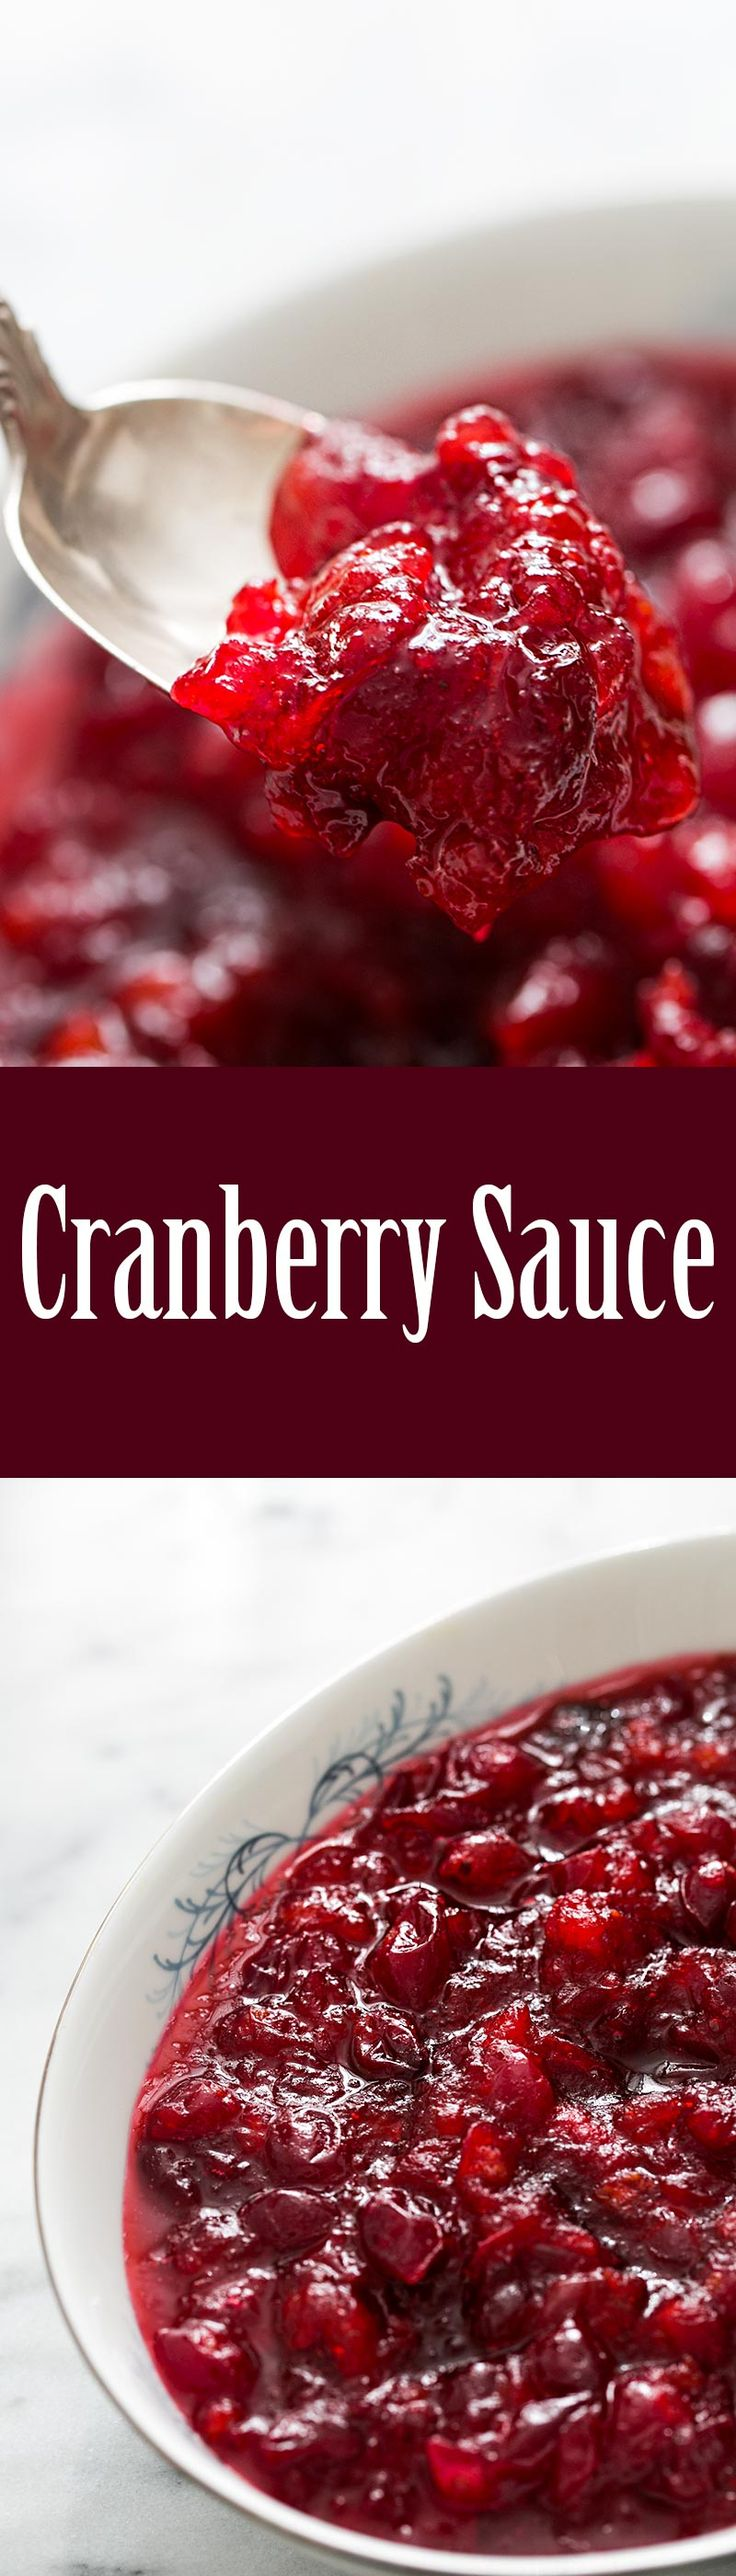 Classic, easy and delicious homemade Thanksgiving cranberry sauce recipe! Learn how to make cranberry sauce from scratch. It's so EASY! Perfect with turkey. #Thanksgiving #CranberrySauce #HolidaySide #Cranberries